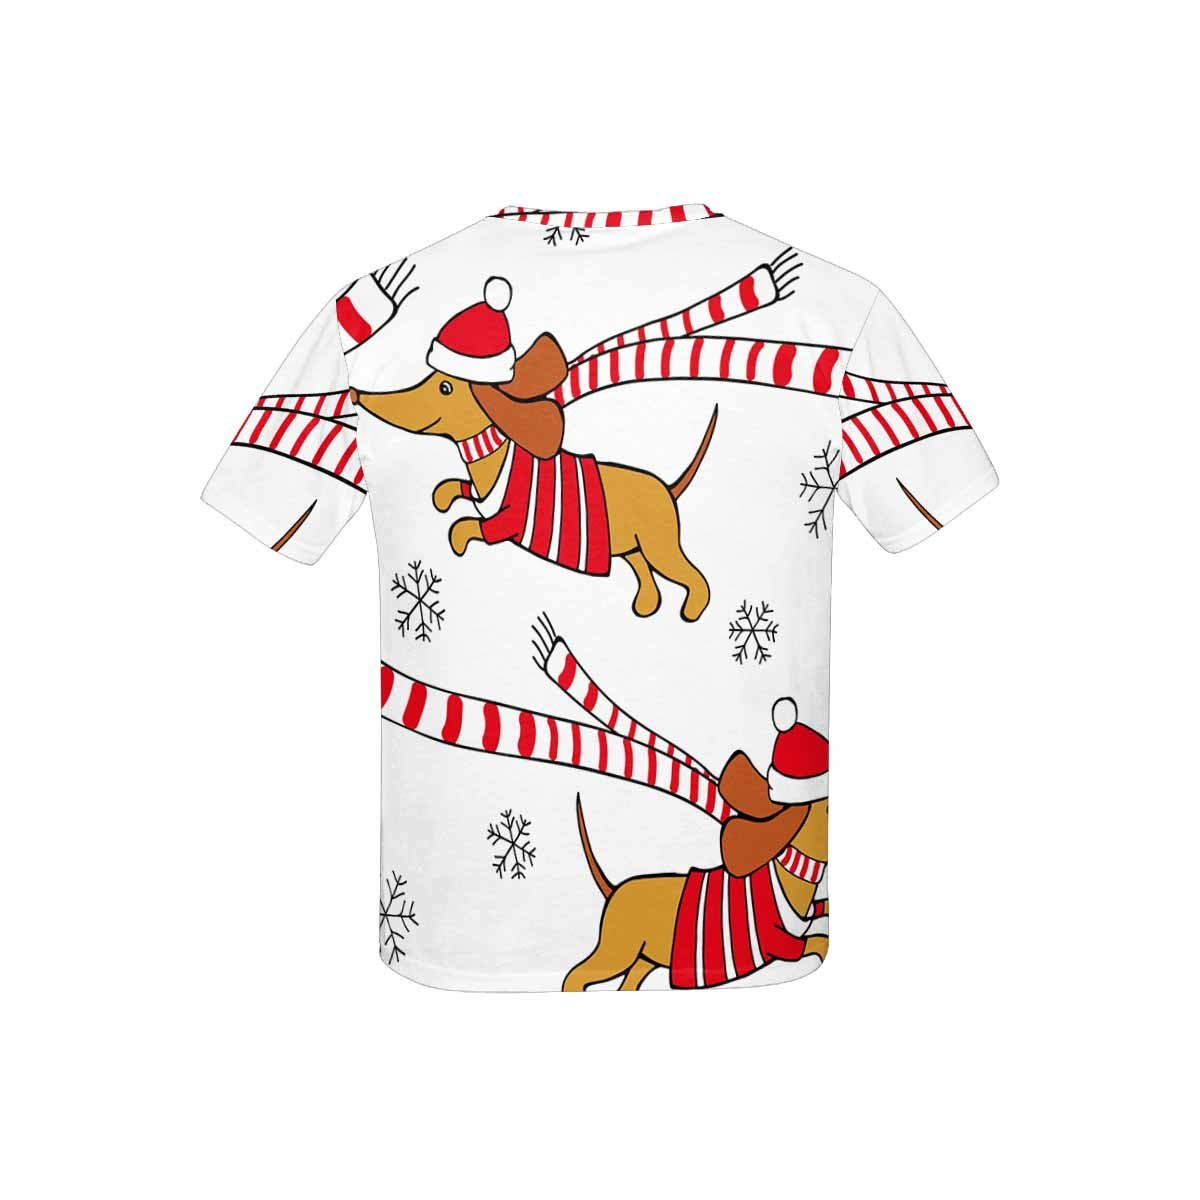 XS-XL INTERESTPRINT Childs T-Shirt Cartoon Picture of A Dog Dachshund in Red Jersey